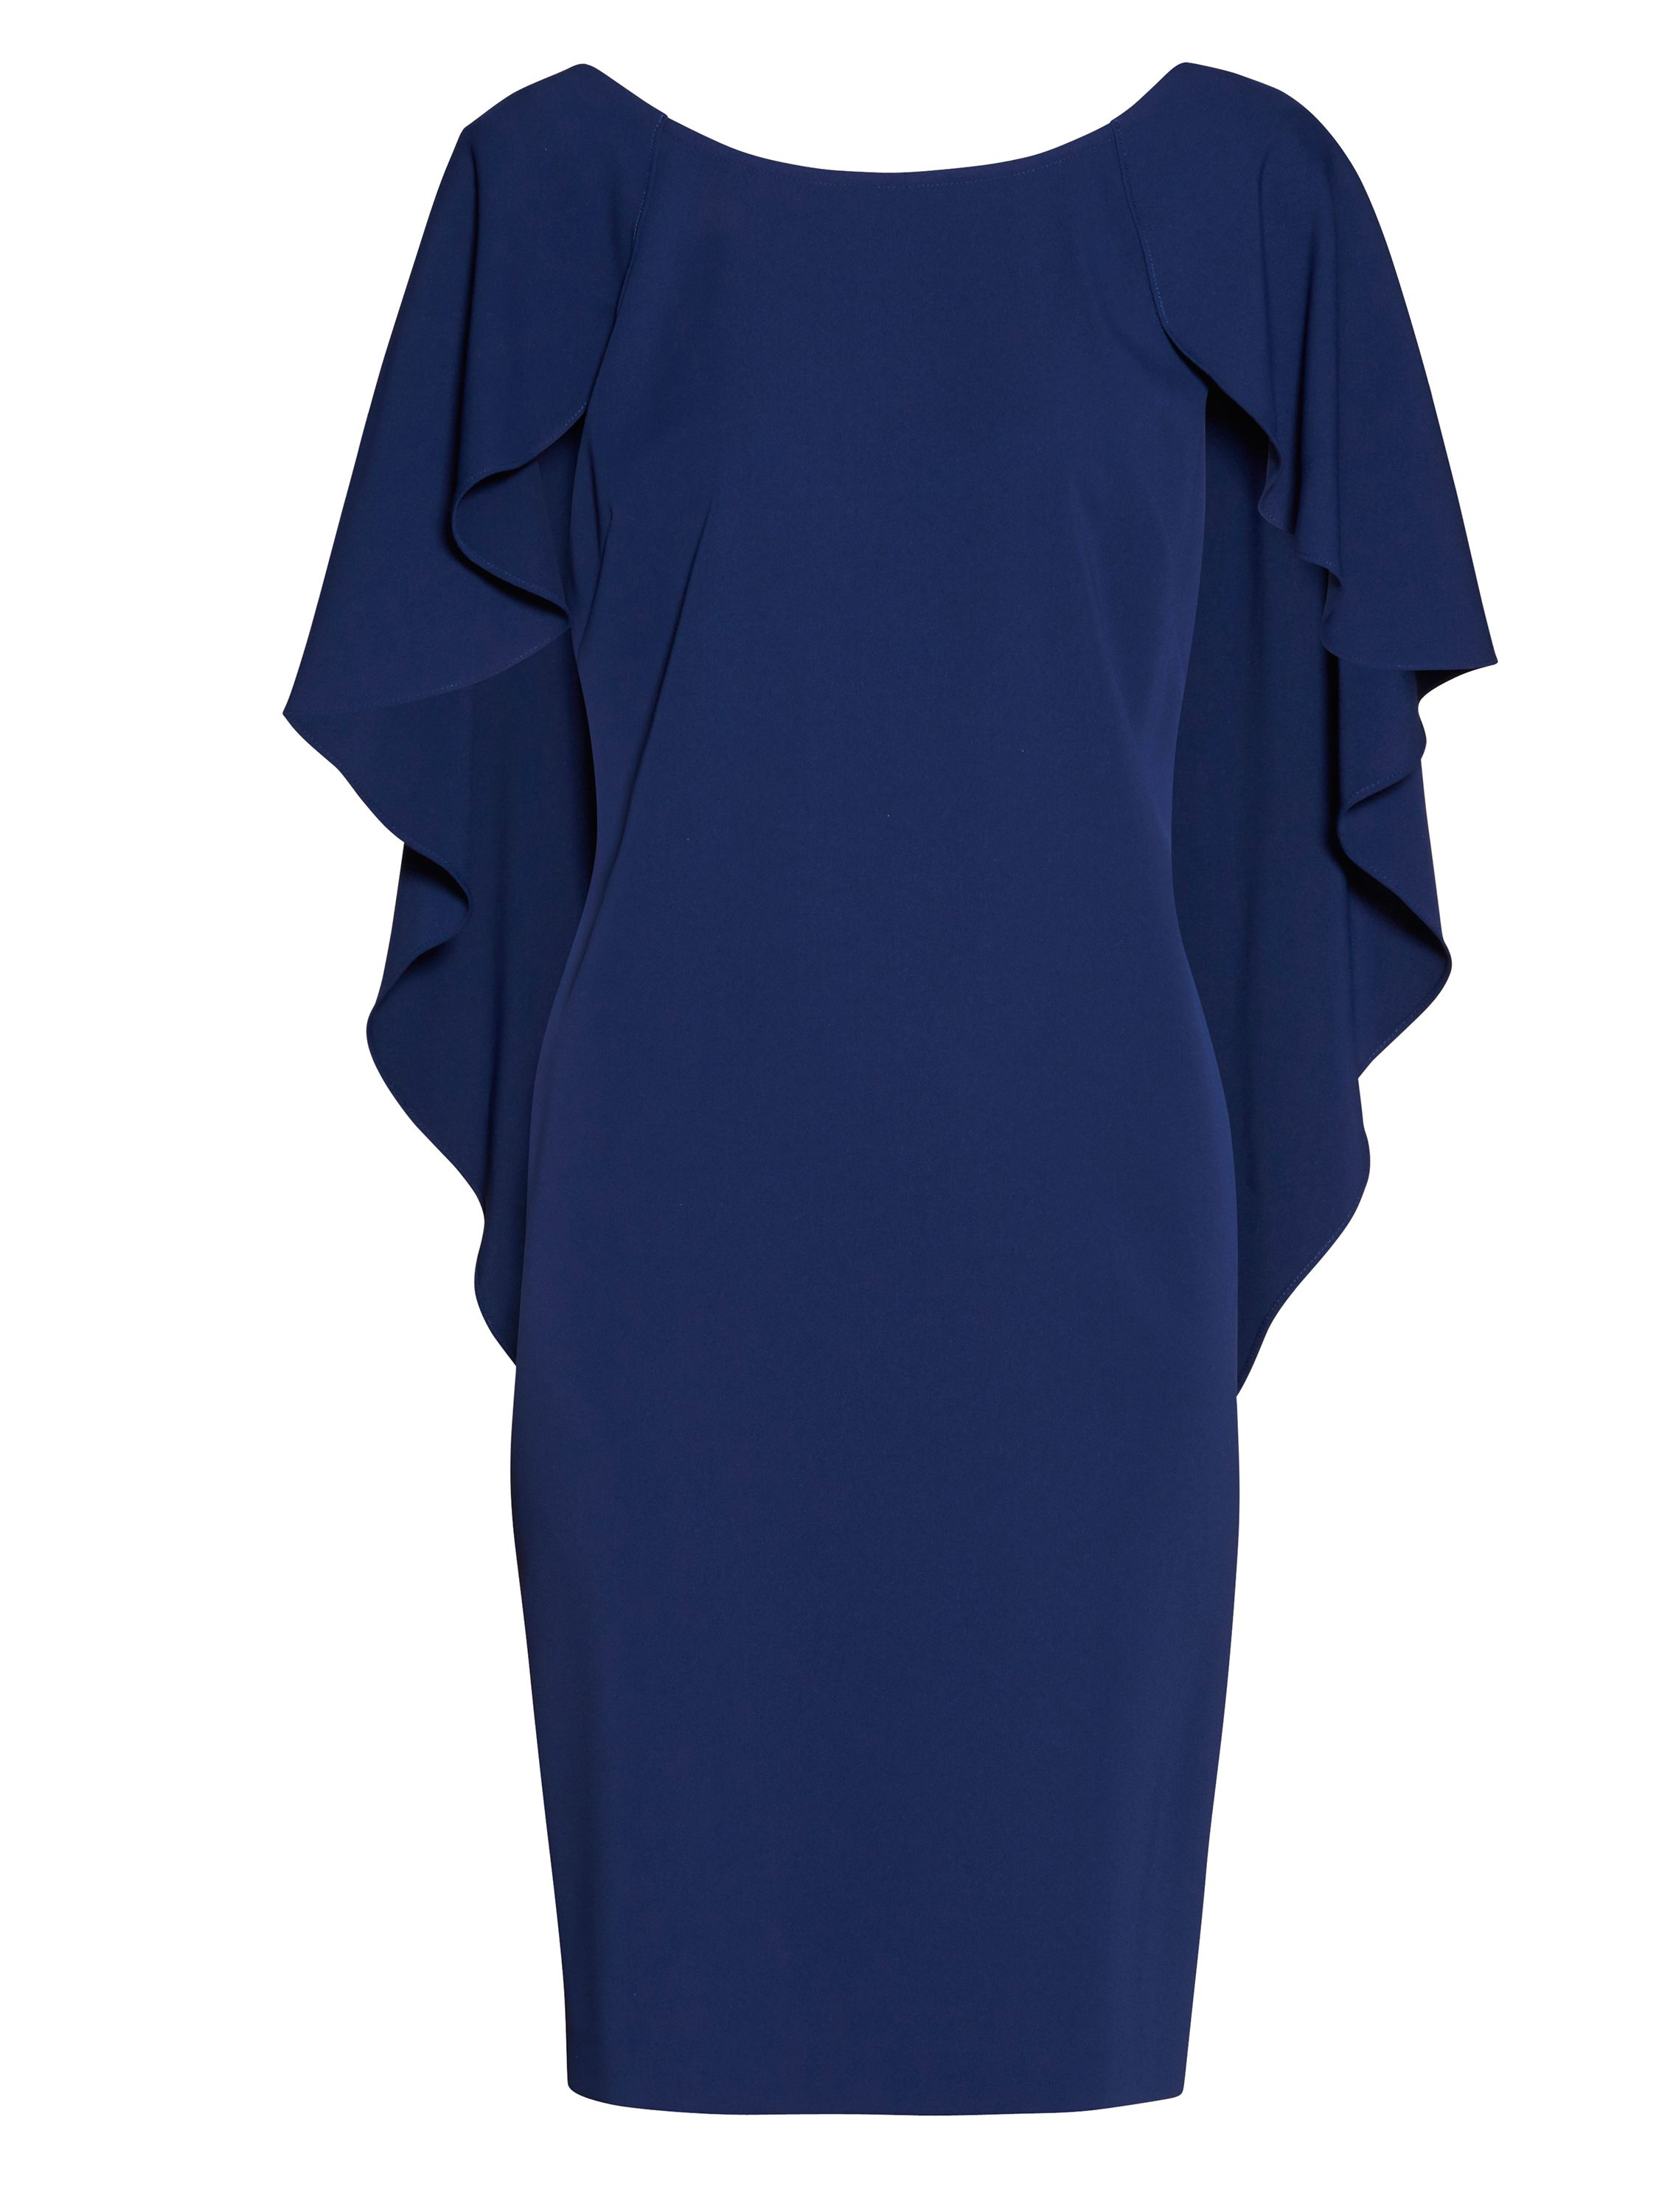 Gina Bacconi Moss crepe dress with cape detail, Blue